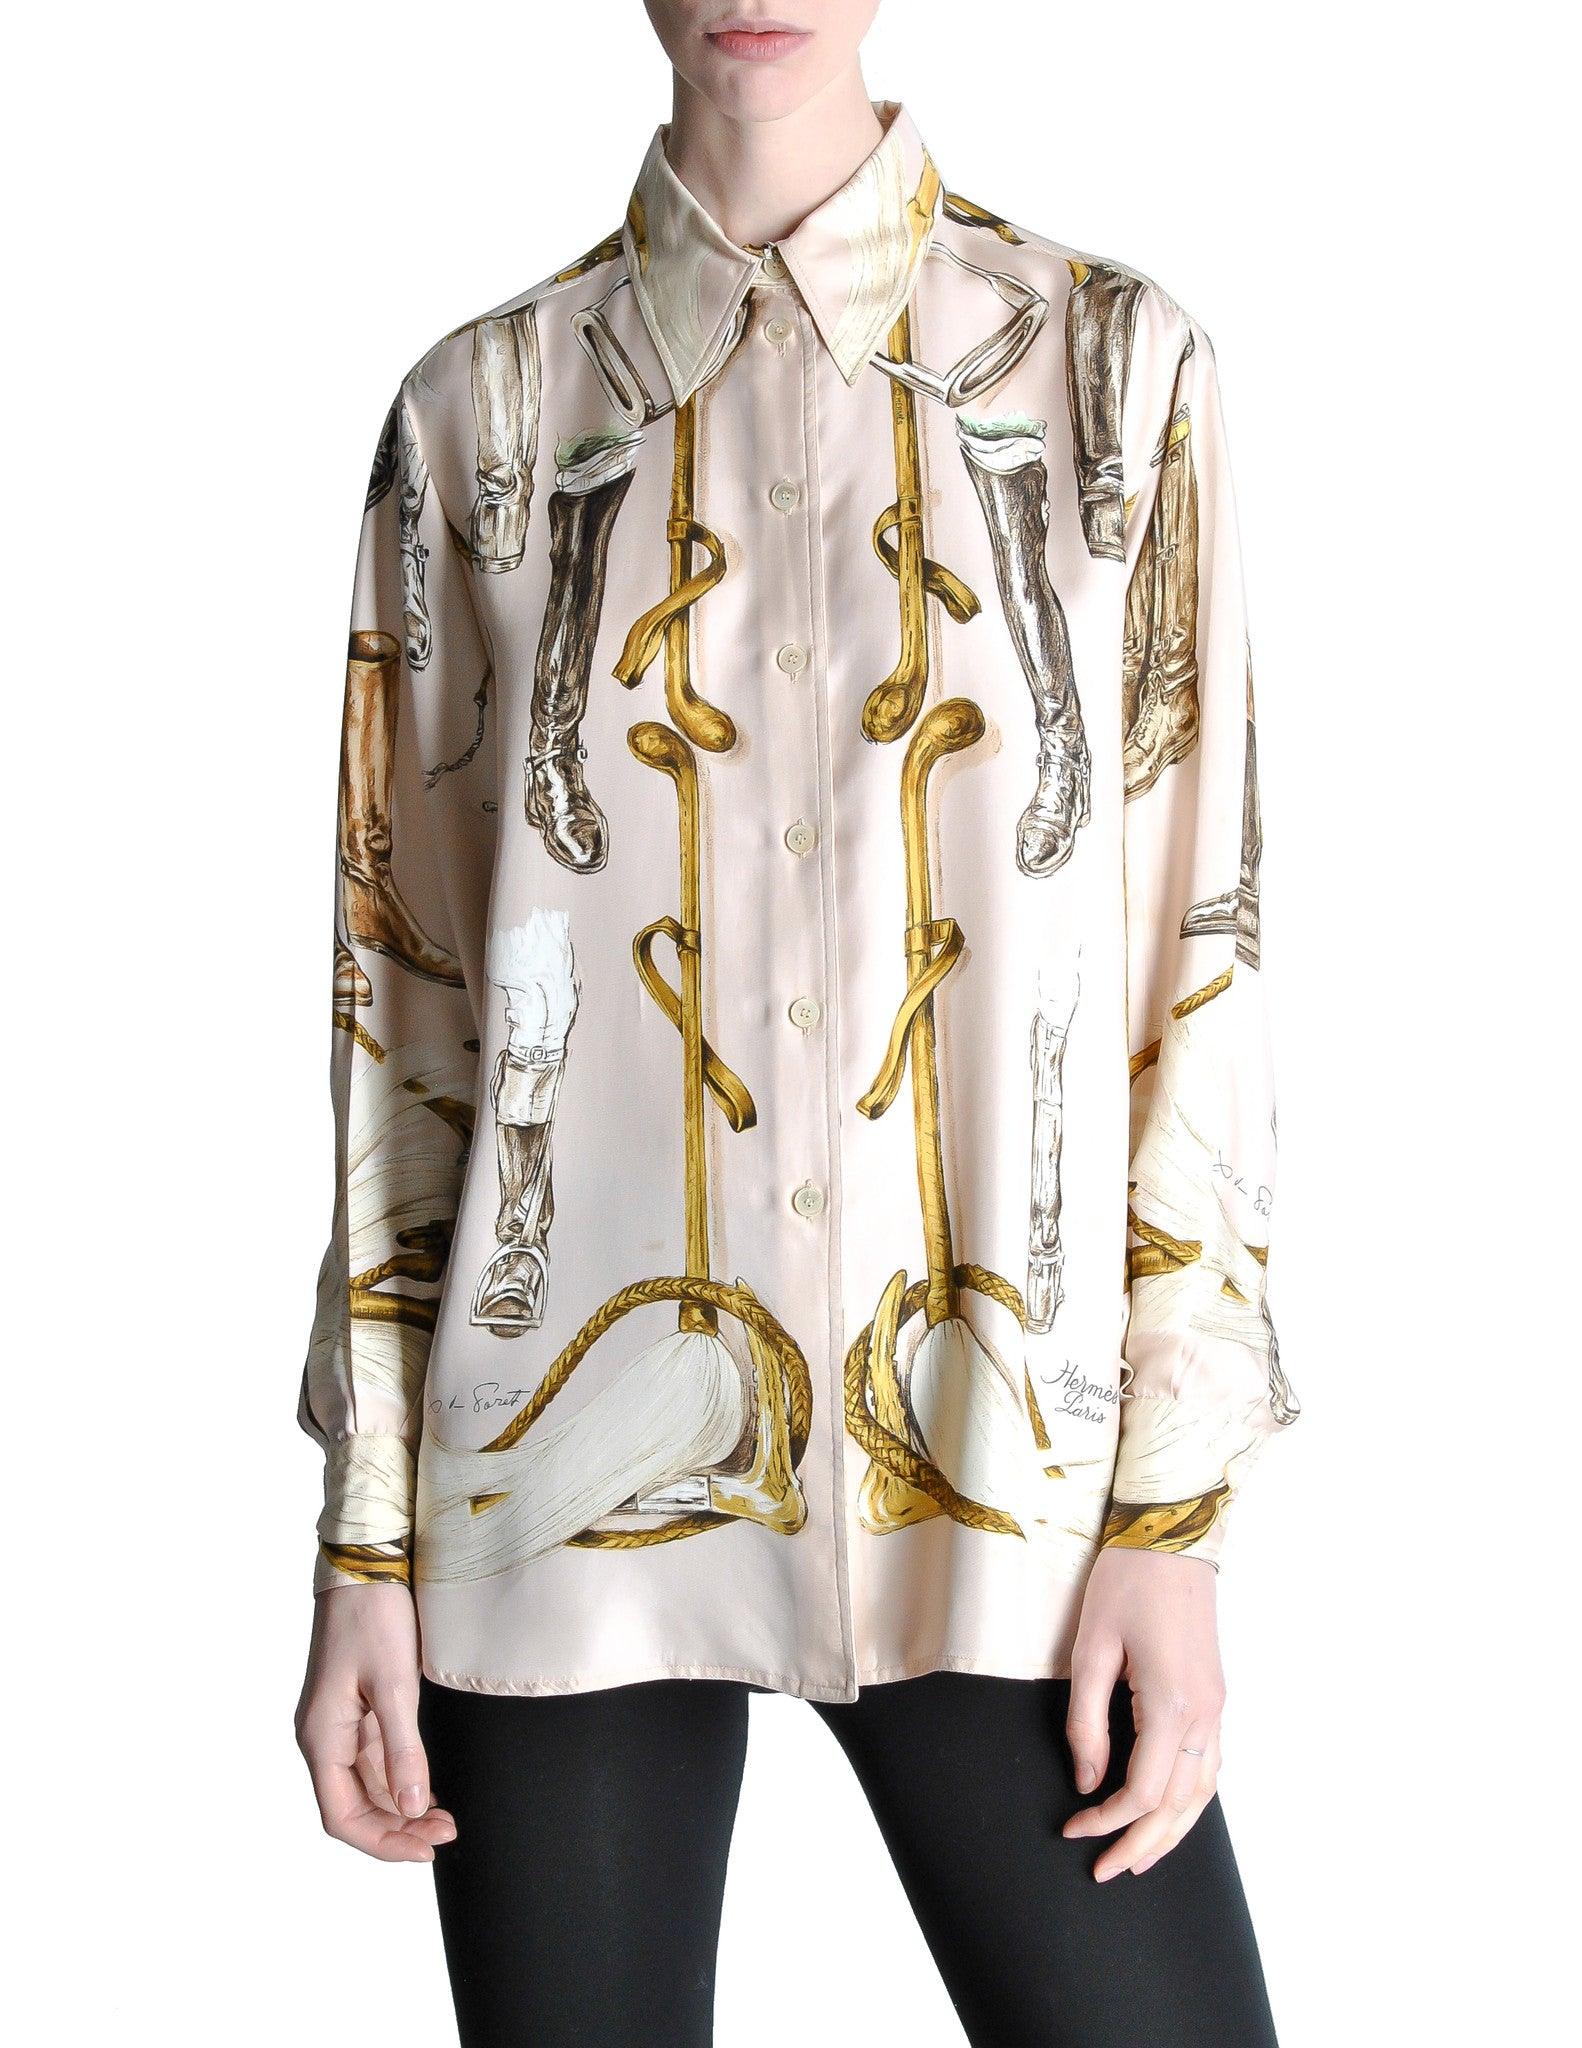 Hermès Vintage 'A Propos de Bottes' by Xavier de Poret Silk Button Down Shirt - Amarcord Vintage Fashion  - 1